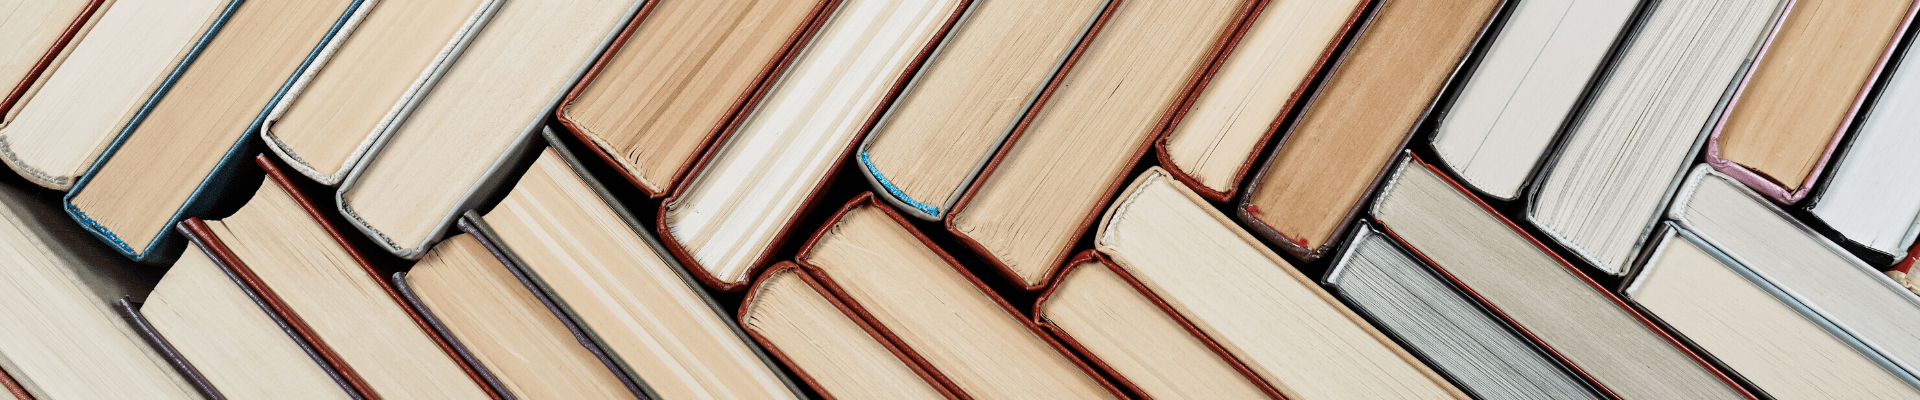 Books Stacked Diagonally